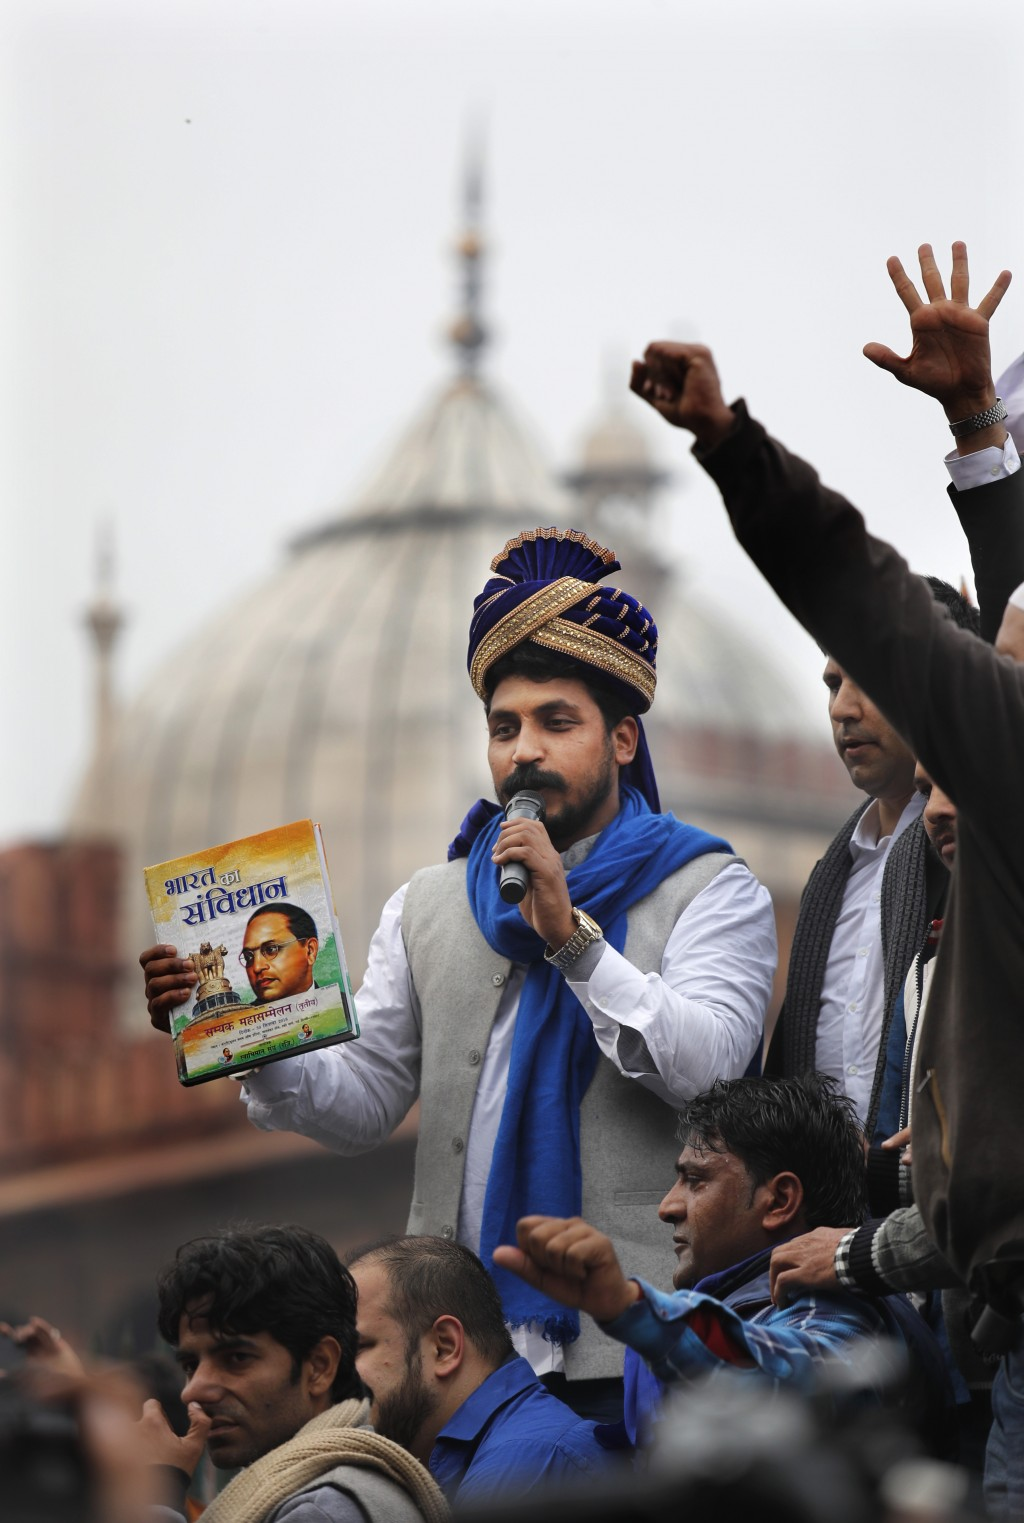 Chandrashekhar Azad, leader of the Bhim Army, a political party of Dalits who represent the Hinduism's lowest caste, center, speaks during a protest a...